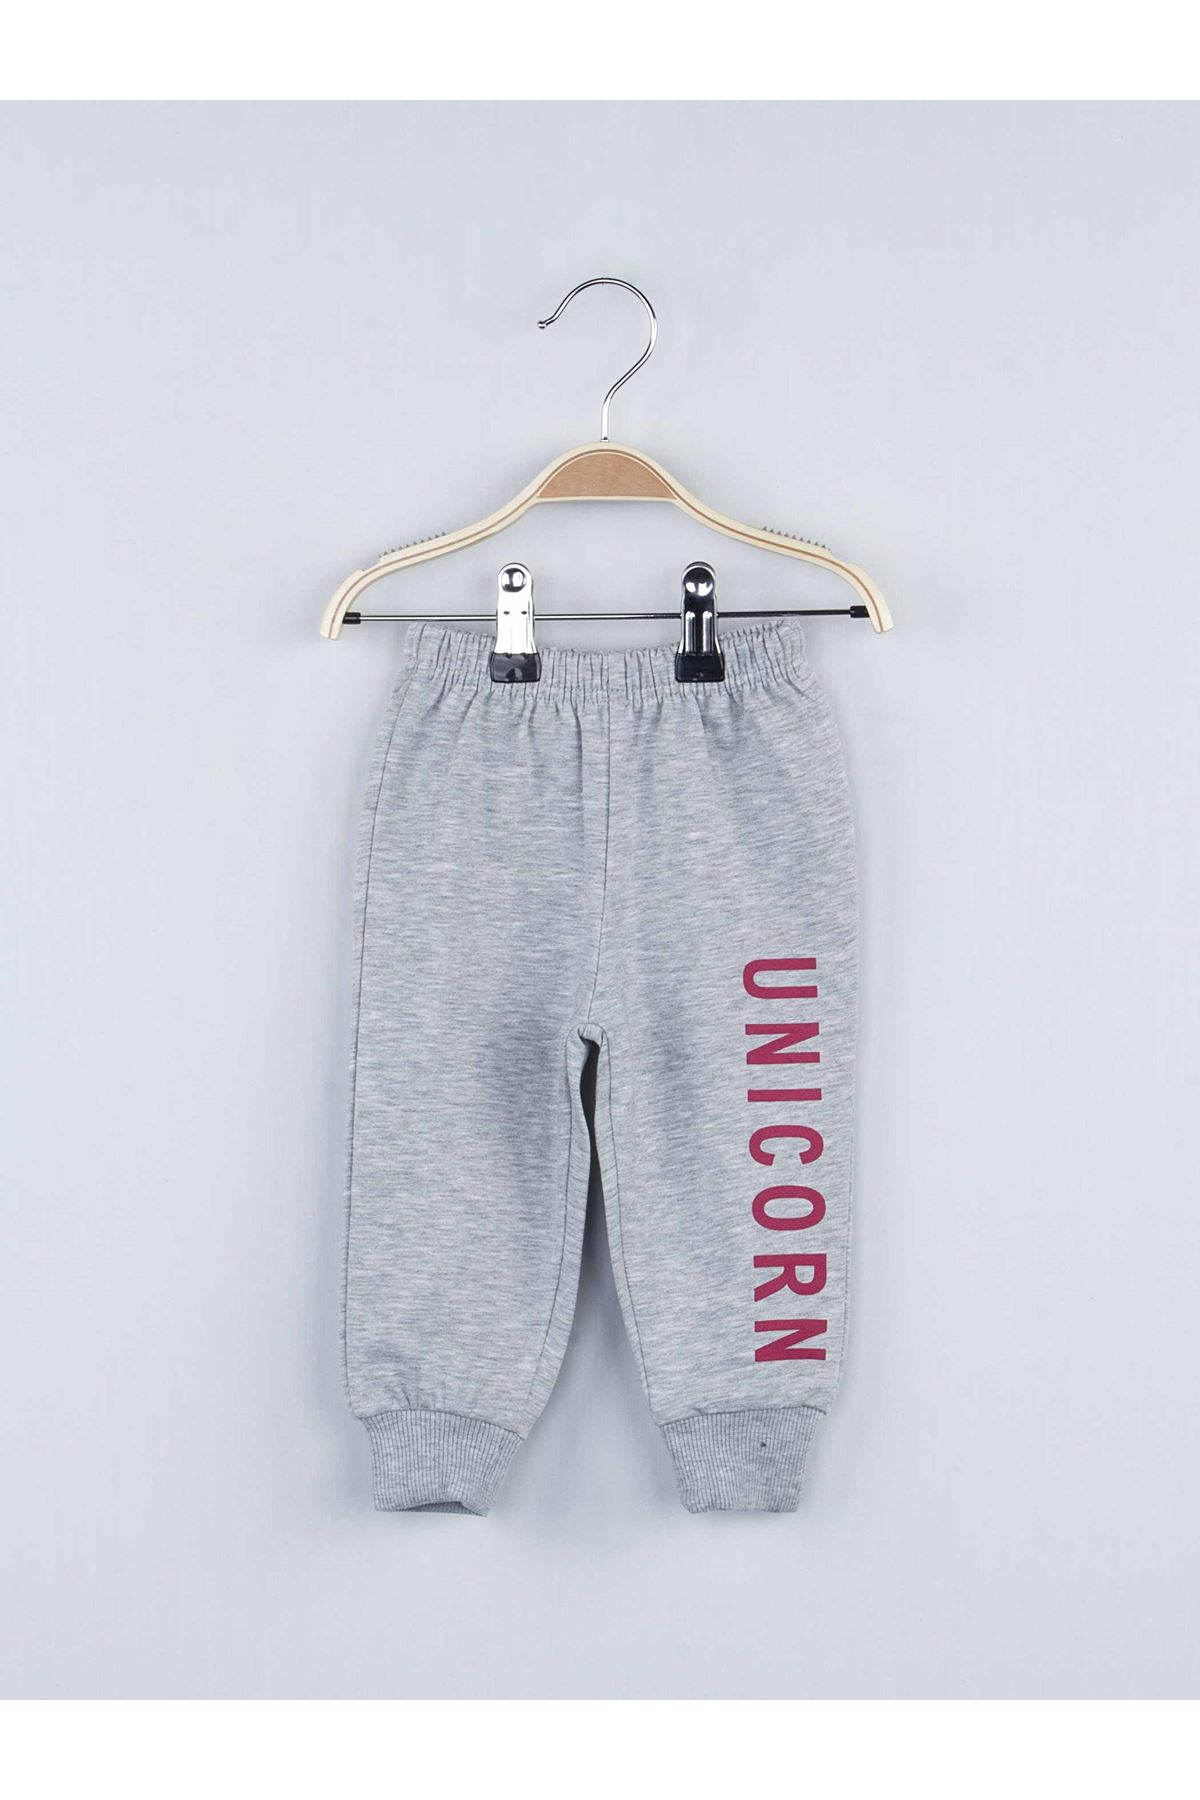 Burgundy gray baby girl 2 piece bottom Andean ball tracksuit set cotton daily use comfortable style babies models